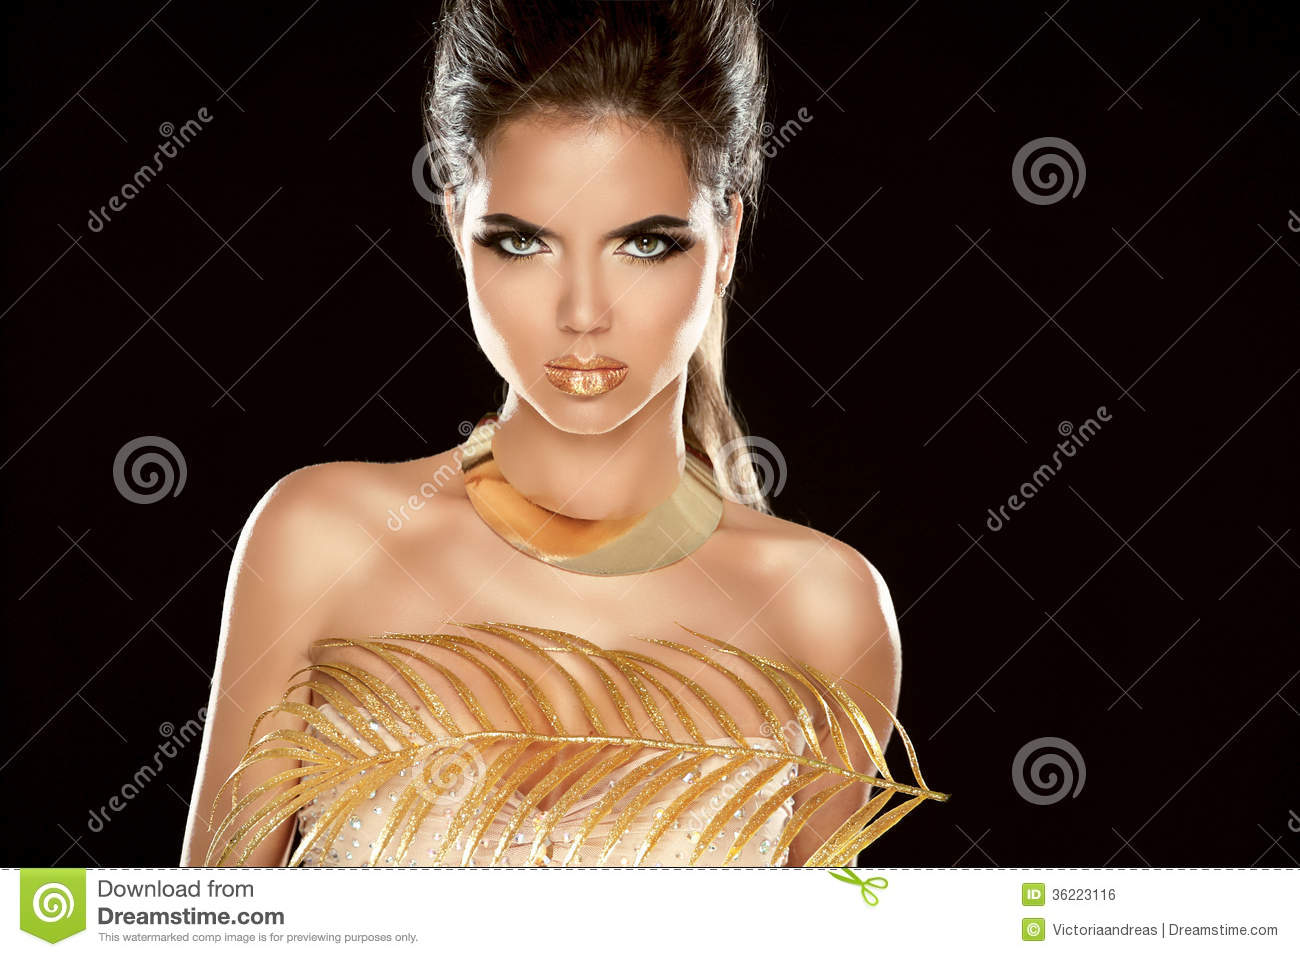 Glamour Fashion Girl Model Portrait With Luxury Golden Jewelry Royalty Free Stock Image Image